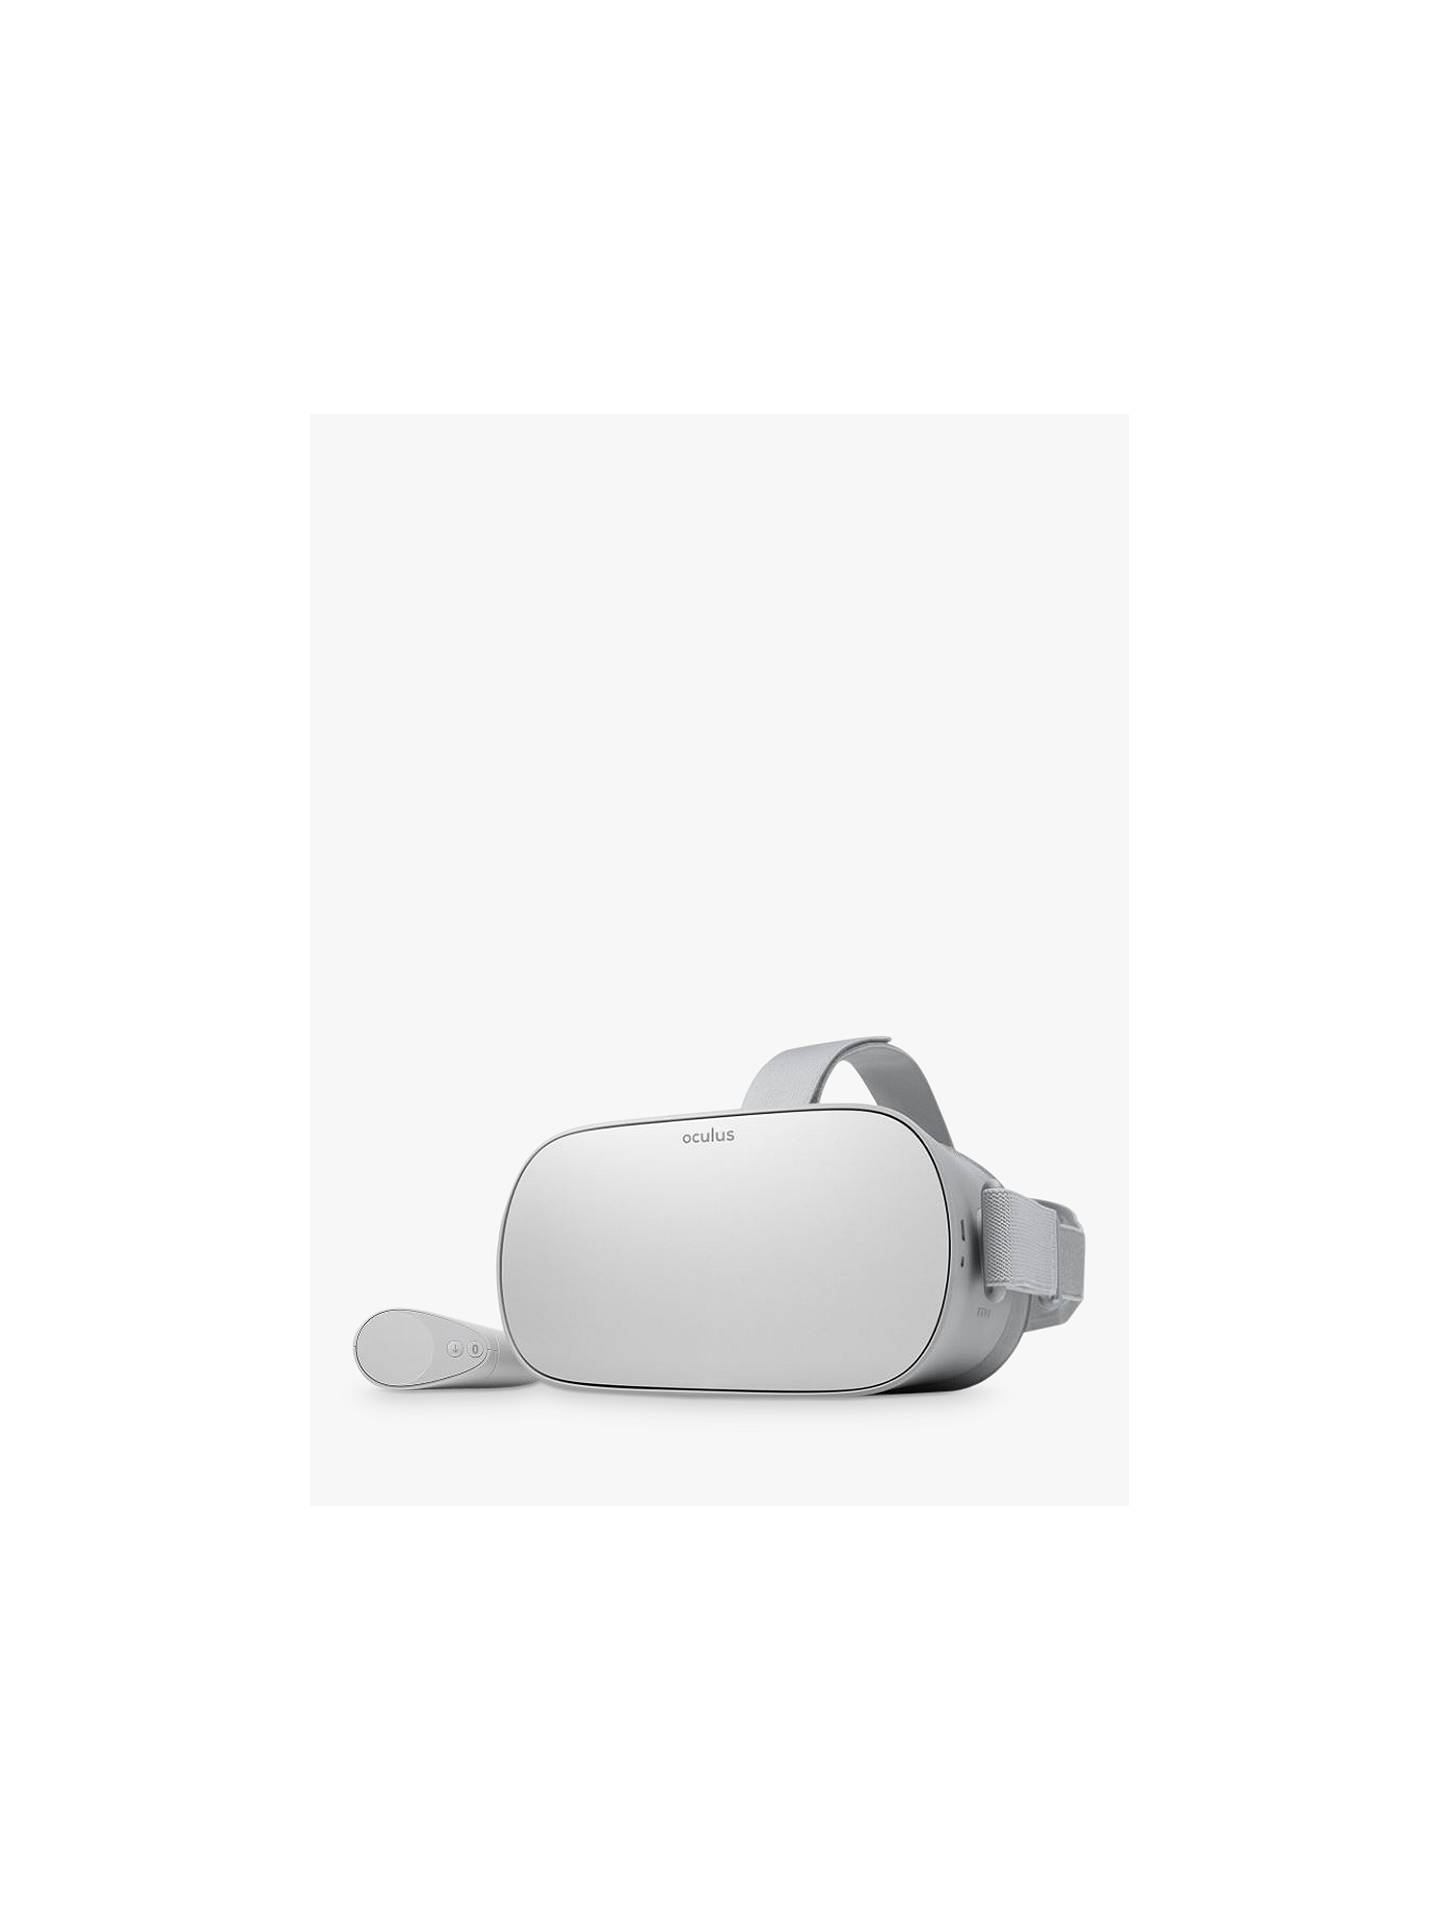 Oculus Go, Standalone Virtual Reality Headset and Controller, 32GB, Silver